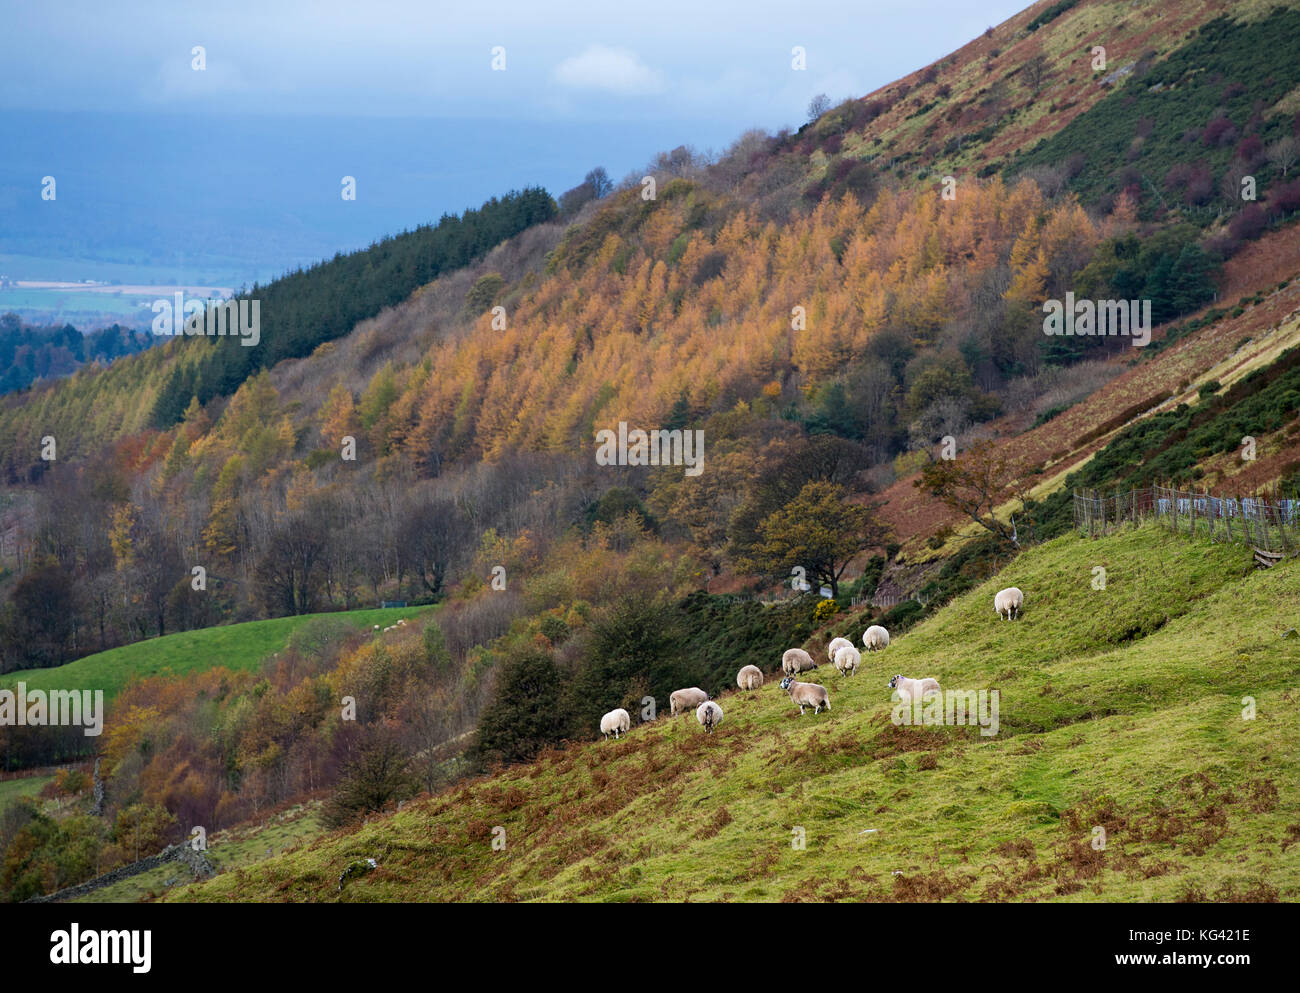 Sheep grazing on a hillside in Glendevon, Perthshire, Scotland. - Stock Image